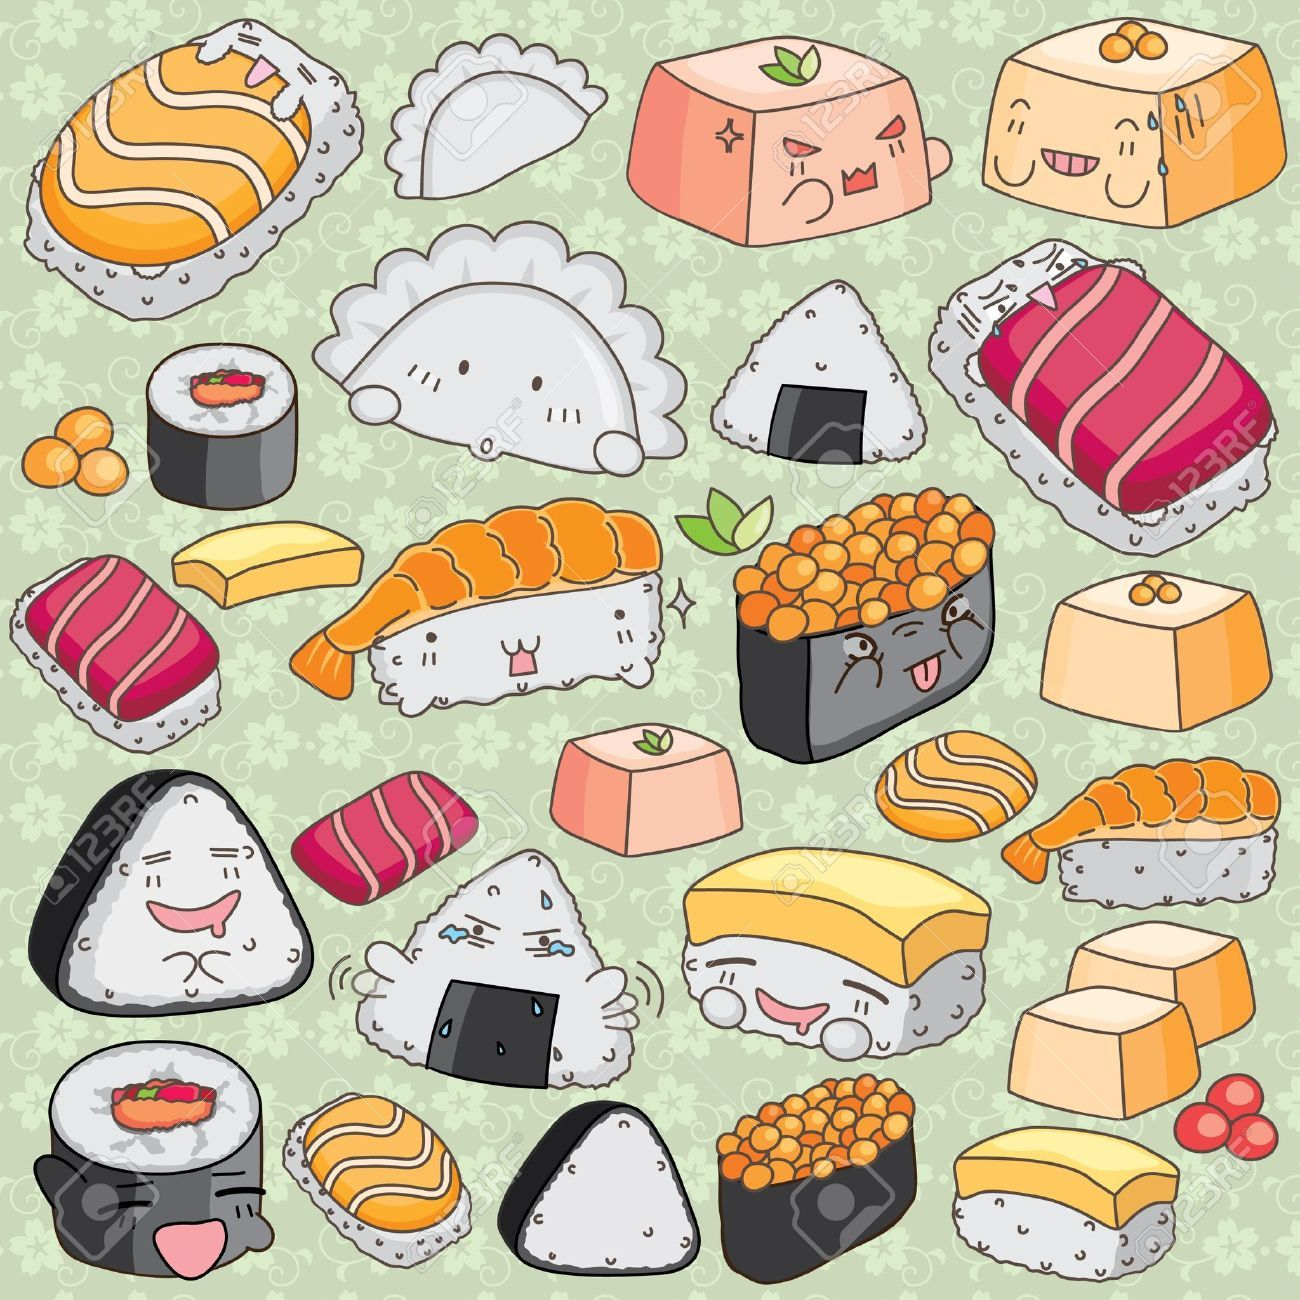 pizza vector free - Google Search | Japanese food art ... (1300 x 1300 Pixel)